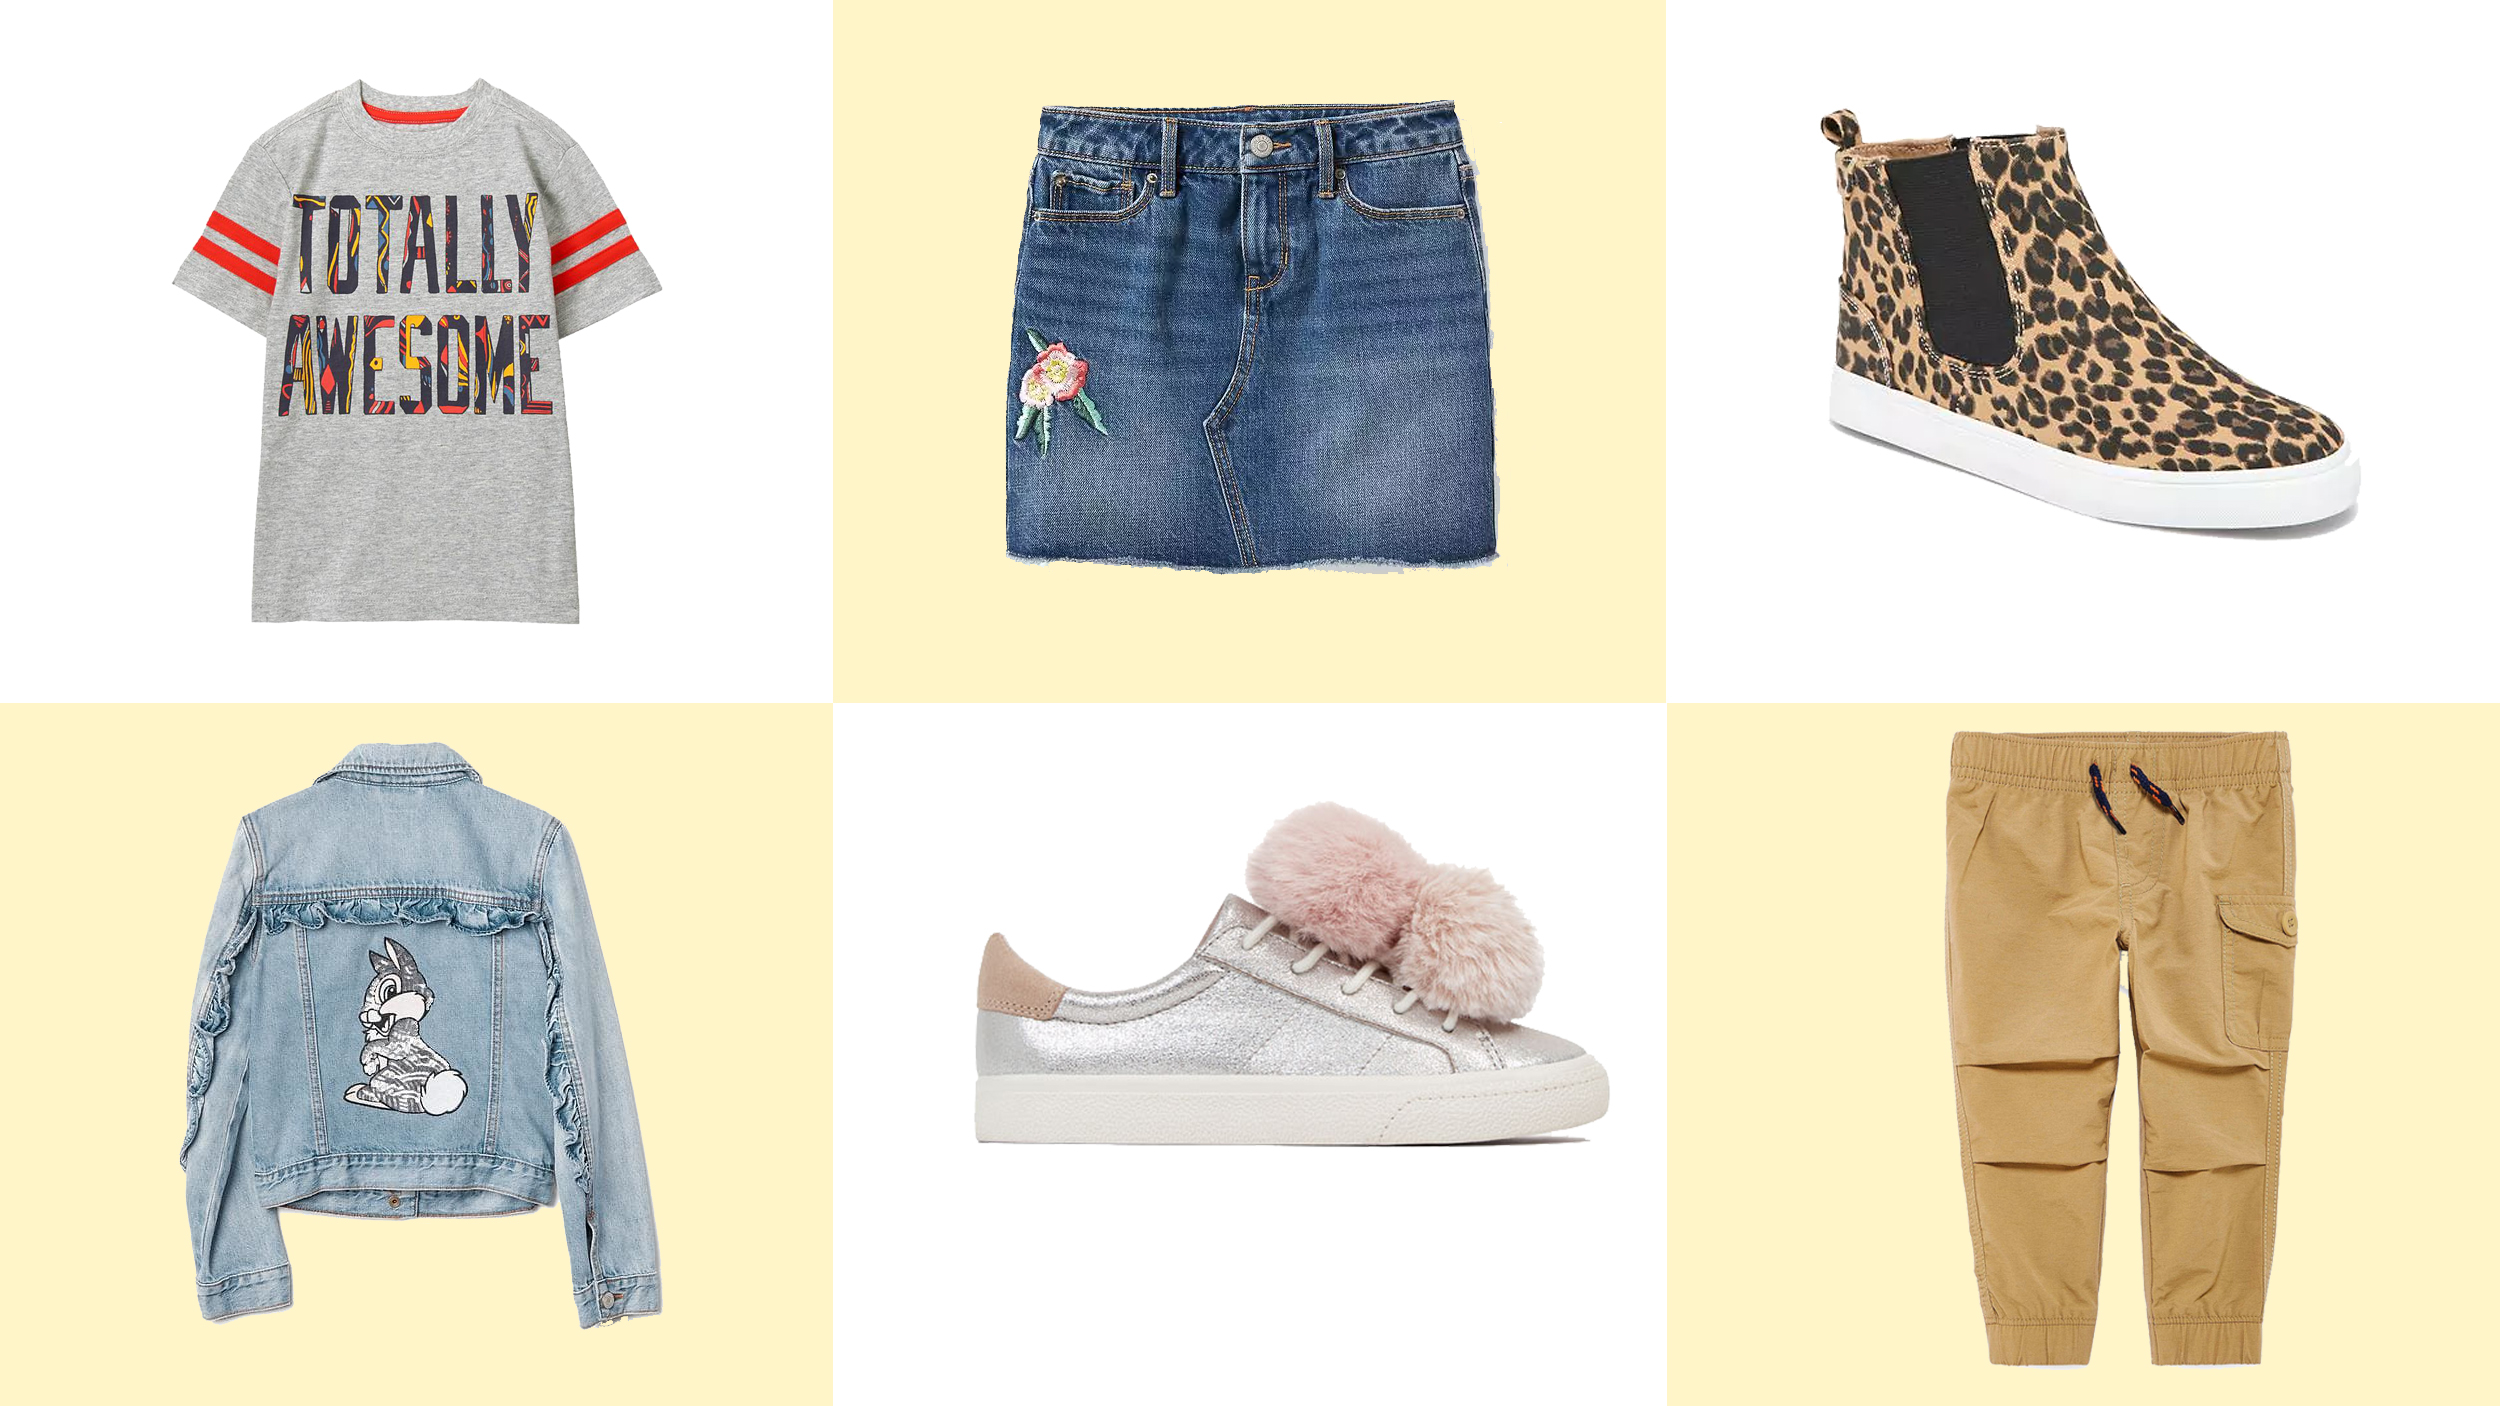 390c21e66acc The 8 best places to buy cute back-to-school outfits